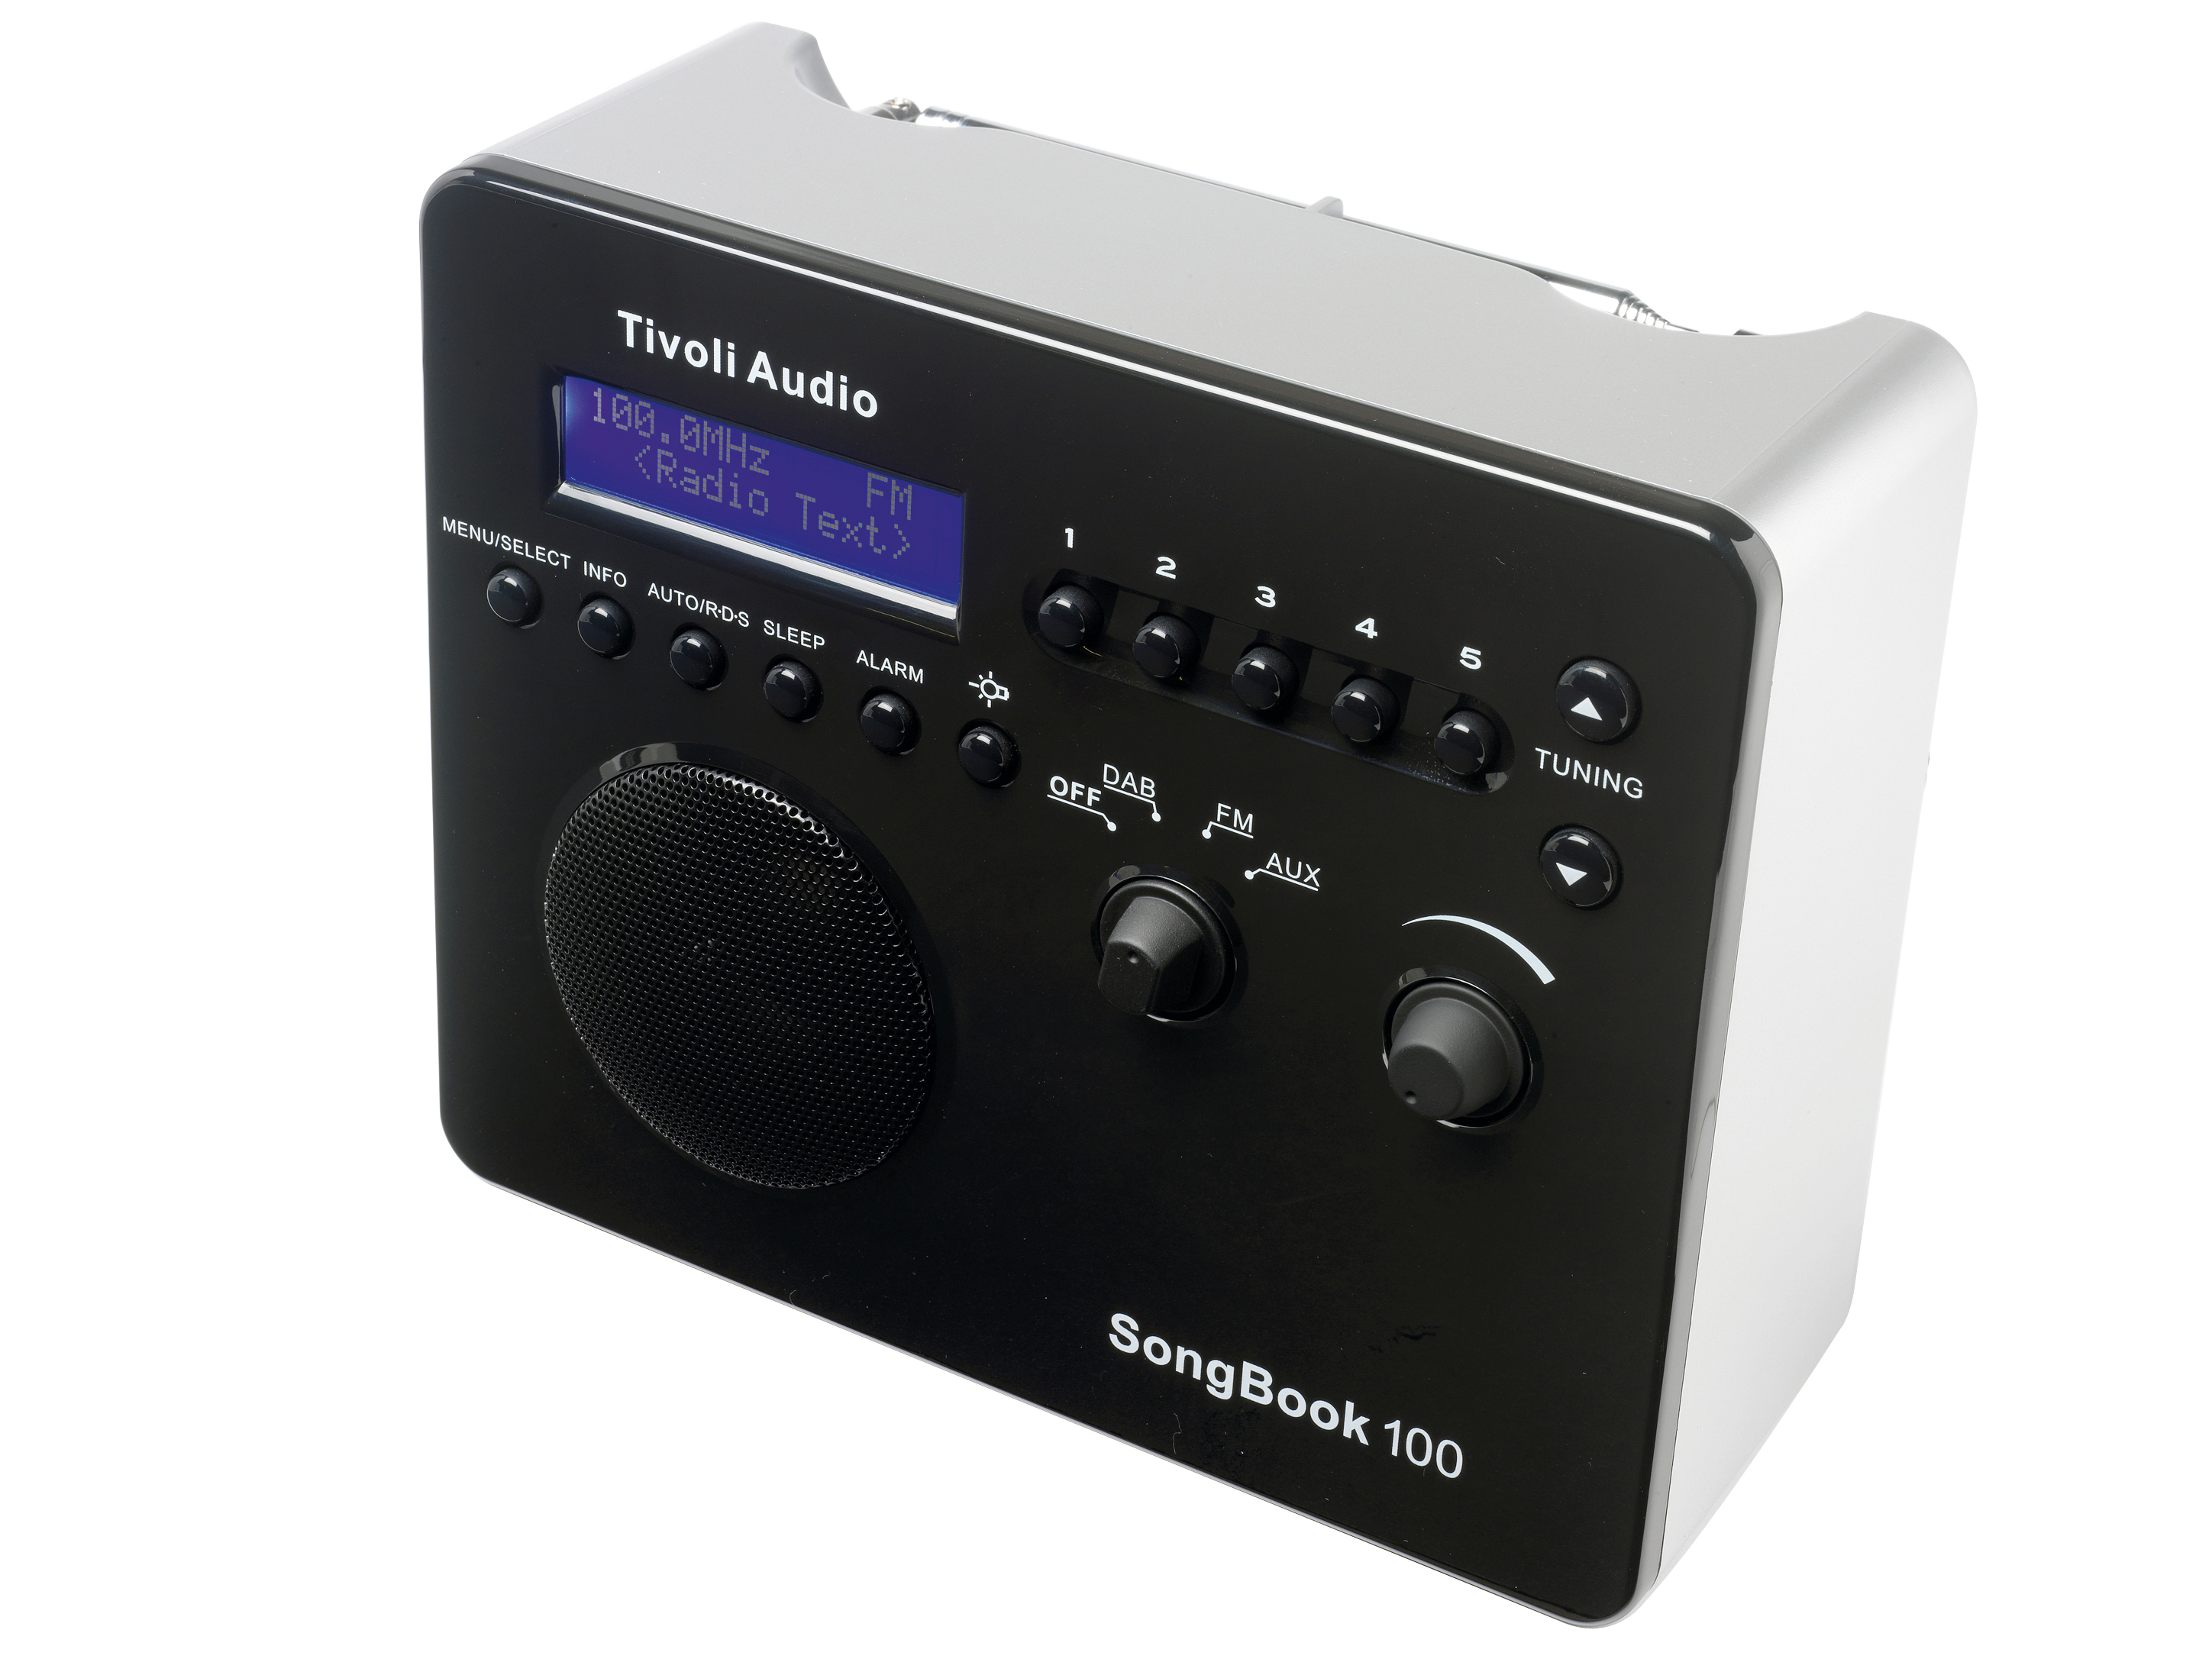 Tivoli Radio Sale Tivoli Songbook 100 Review Techradar